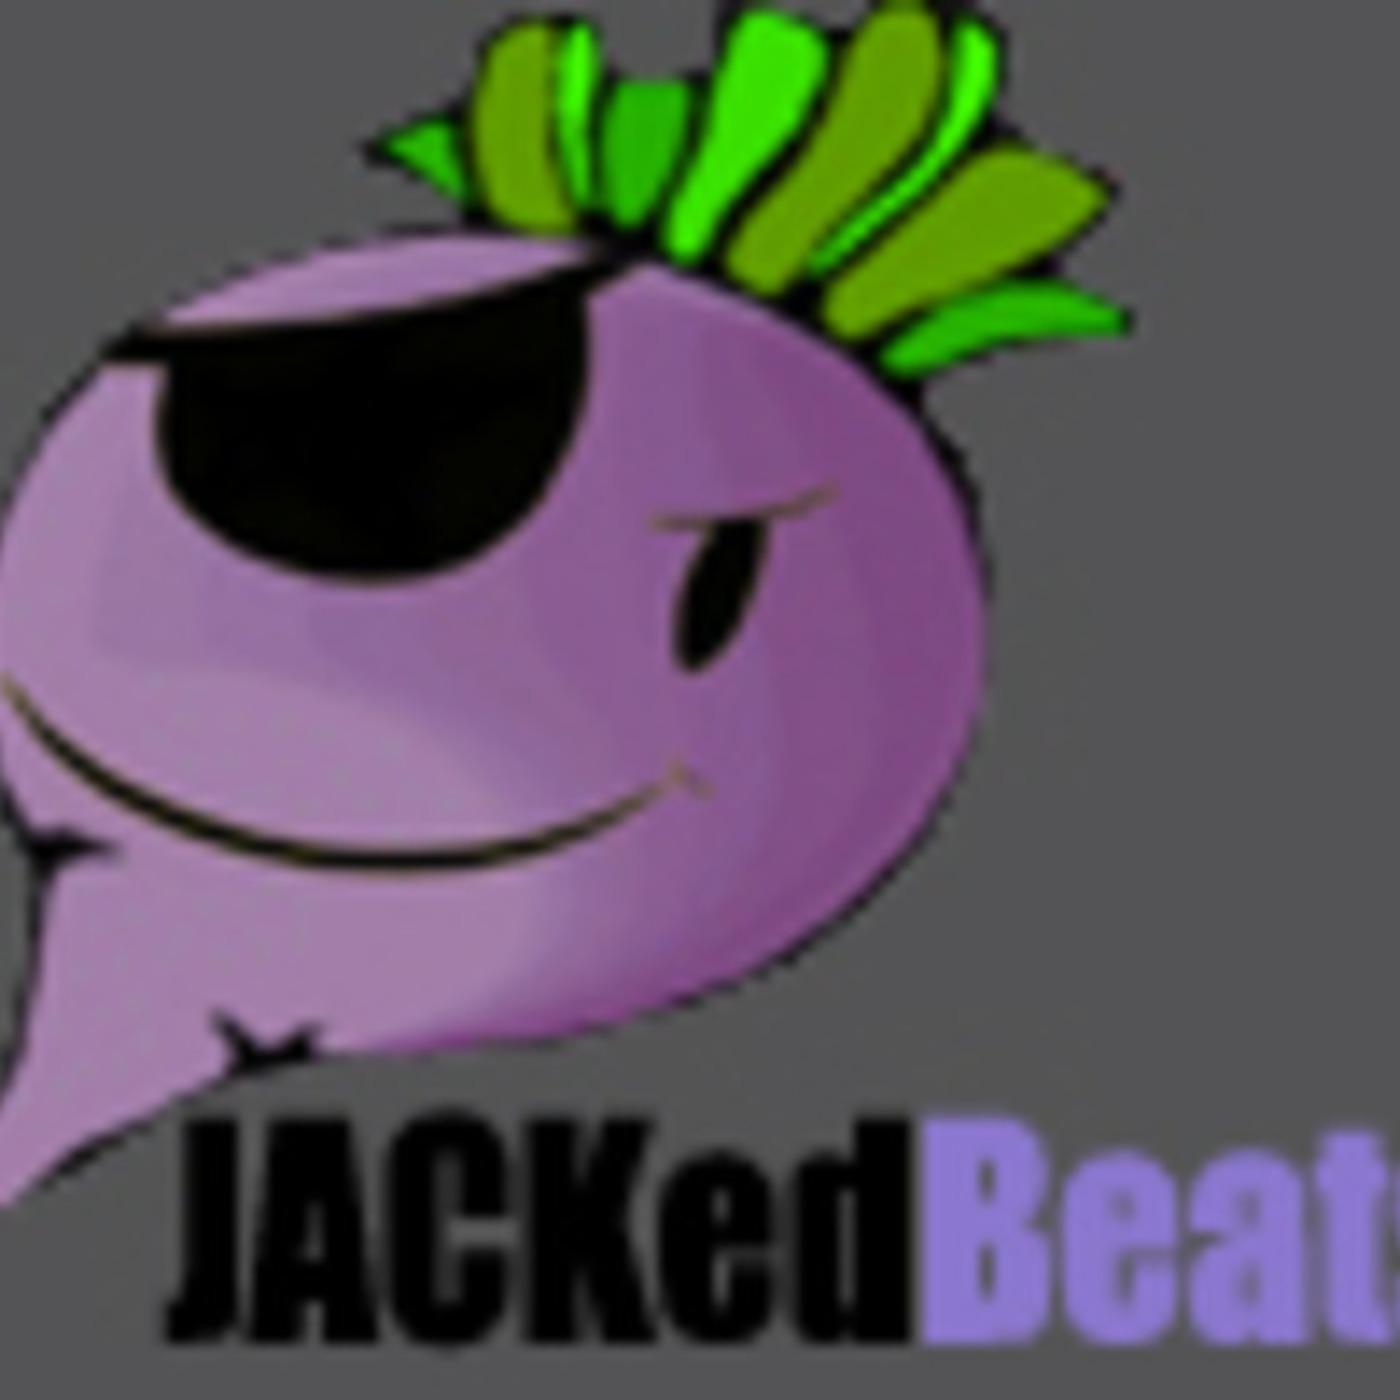 JACKed Beats Radio .net's Podcast